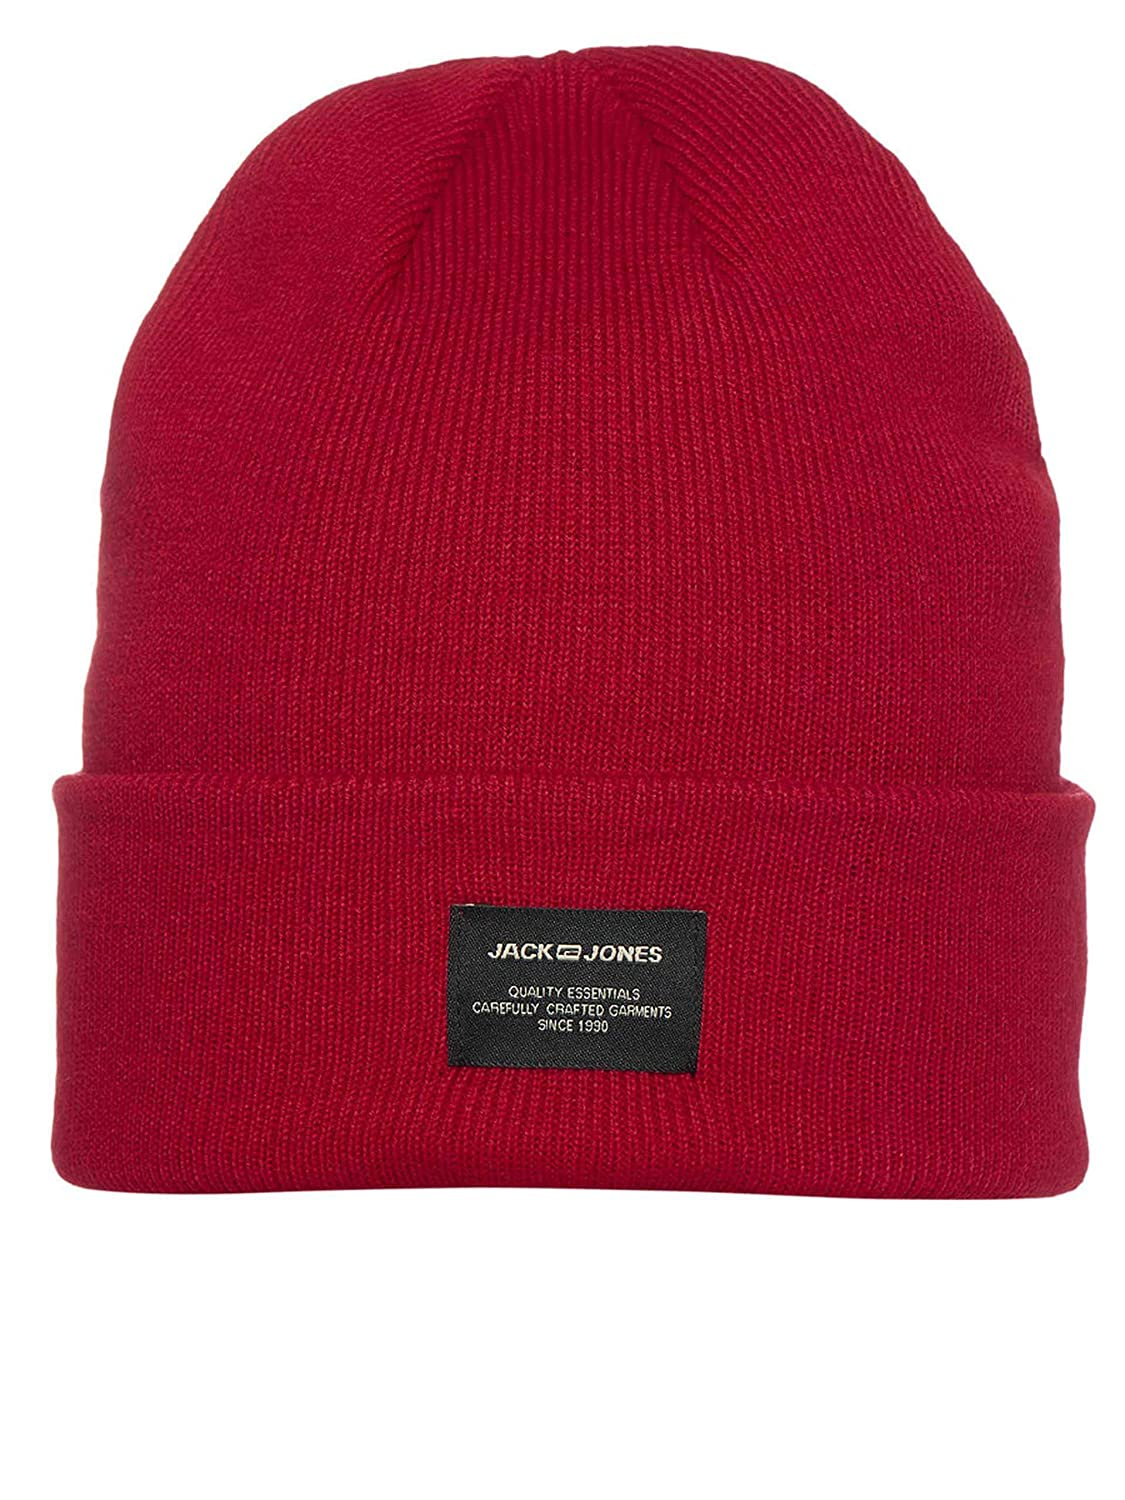 JACK&JONES 12092815 DNA BEANIE SOMBRERO Hombre RED UNI: Amazon.es ...